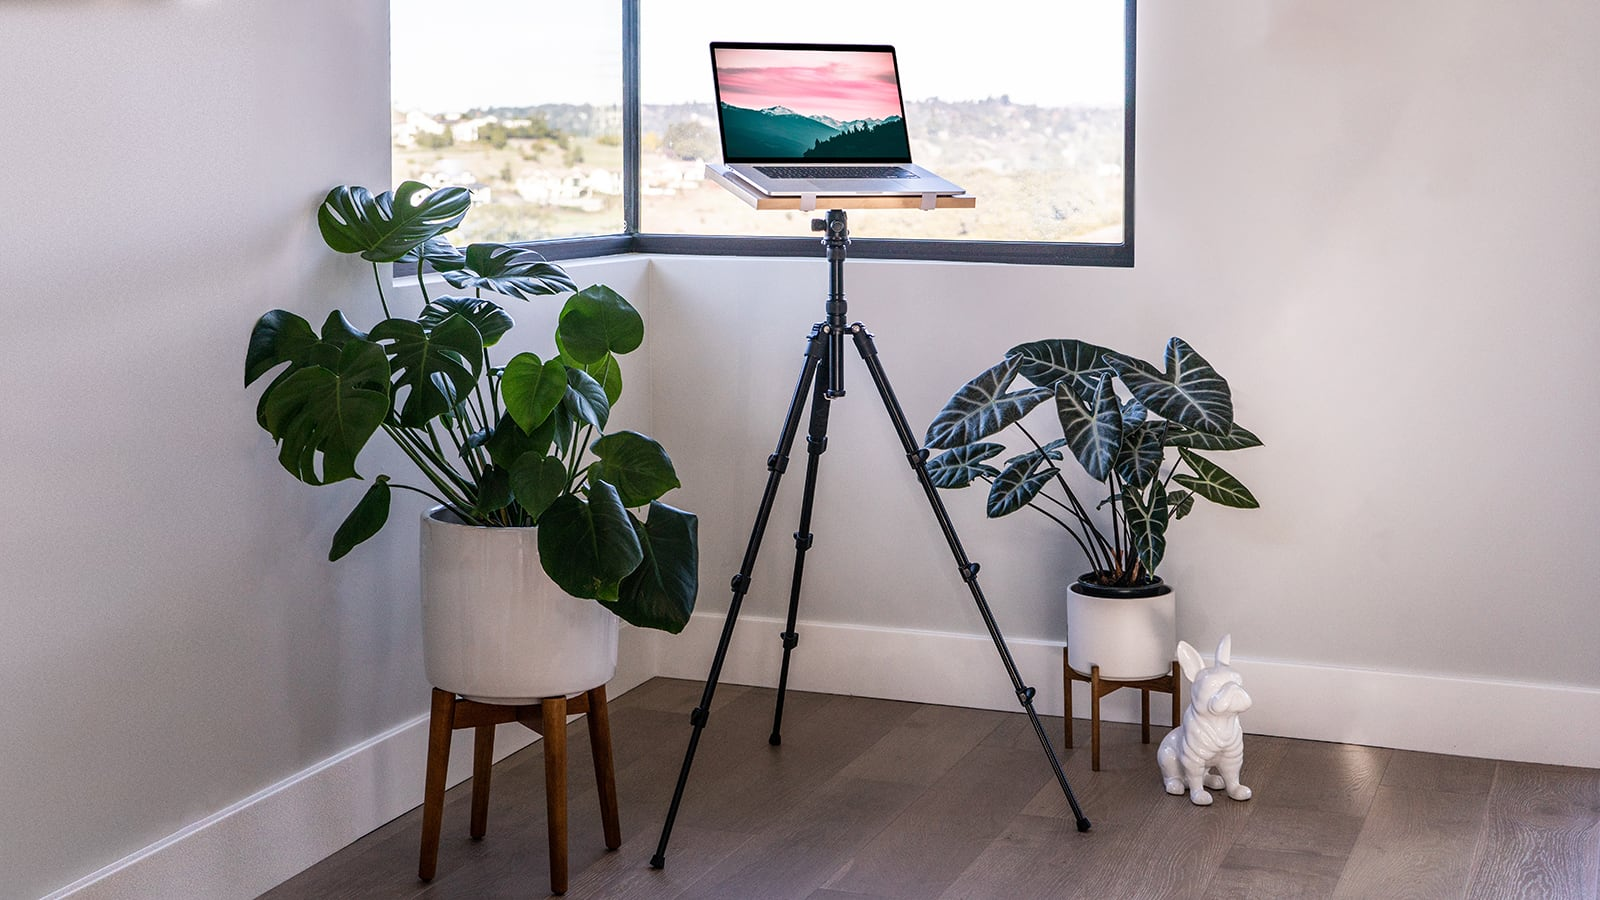 Intension Design Tripod Standing Desk has a lightweight, adjustable, and portable design